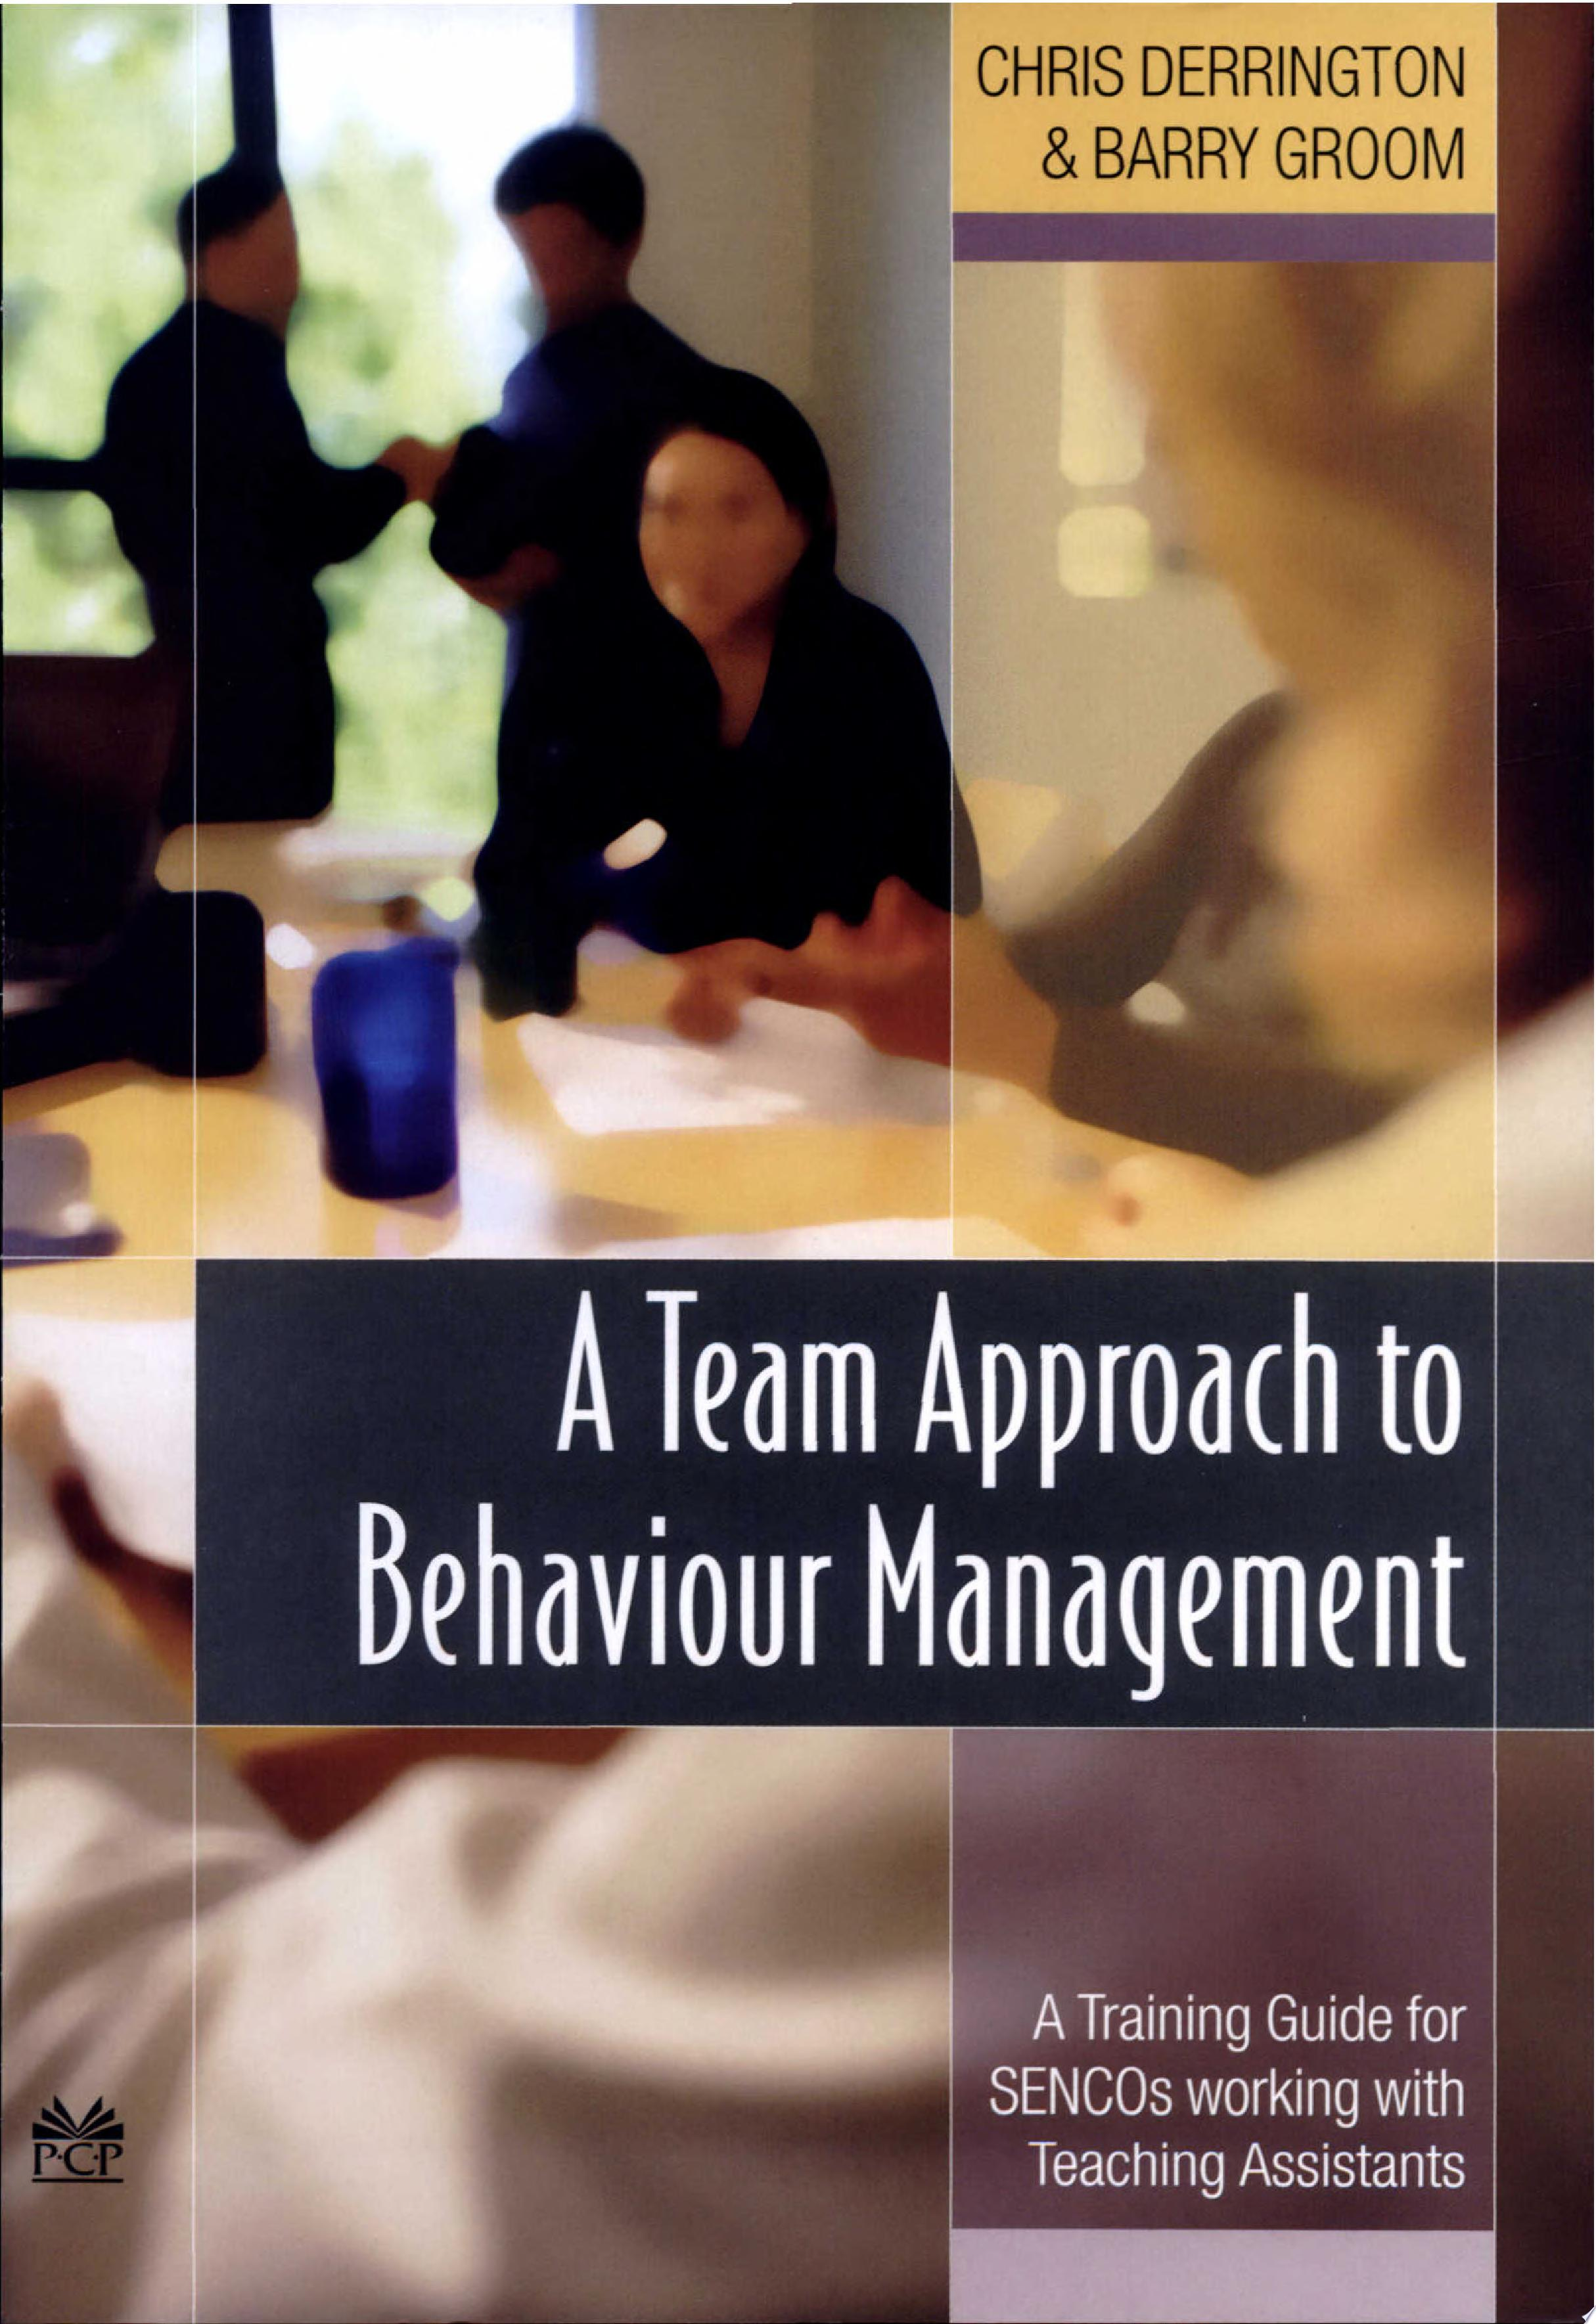 A Team Approach to Behaviour Management